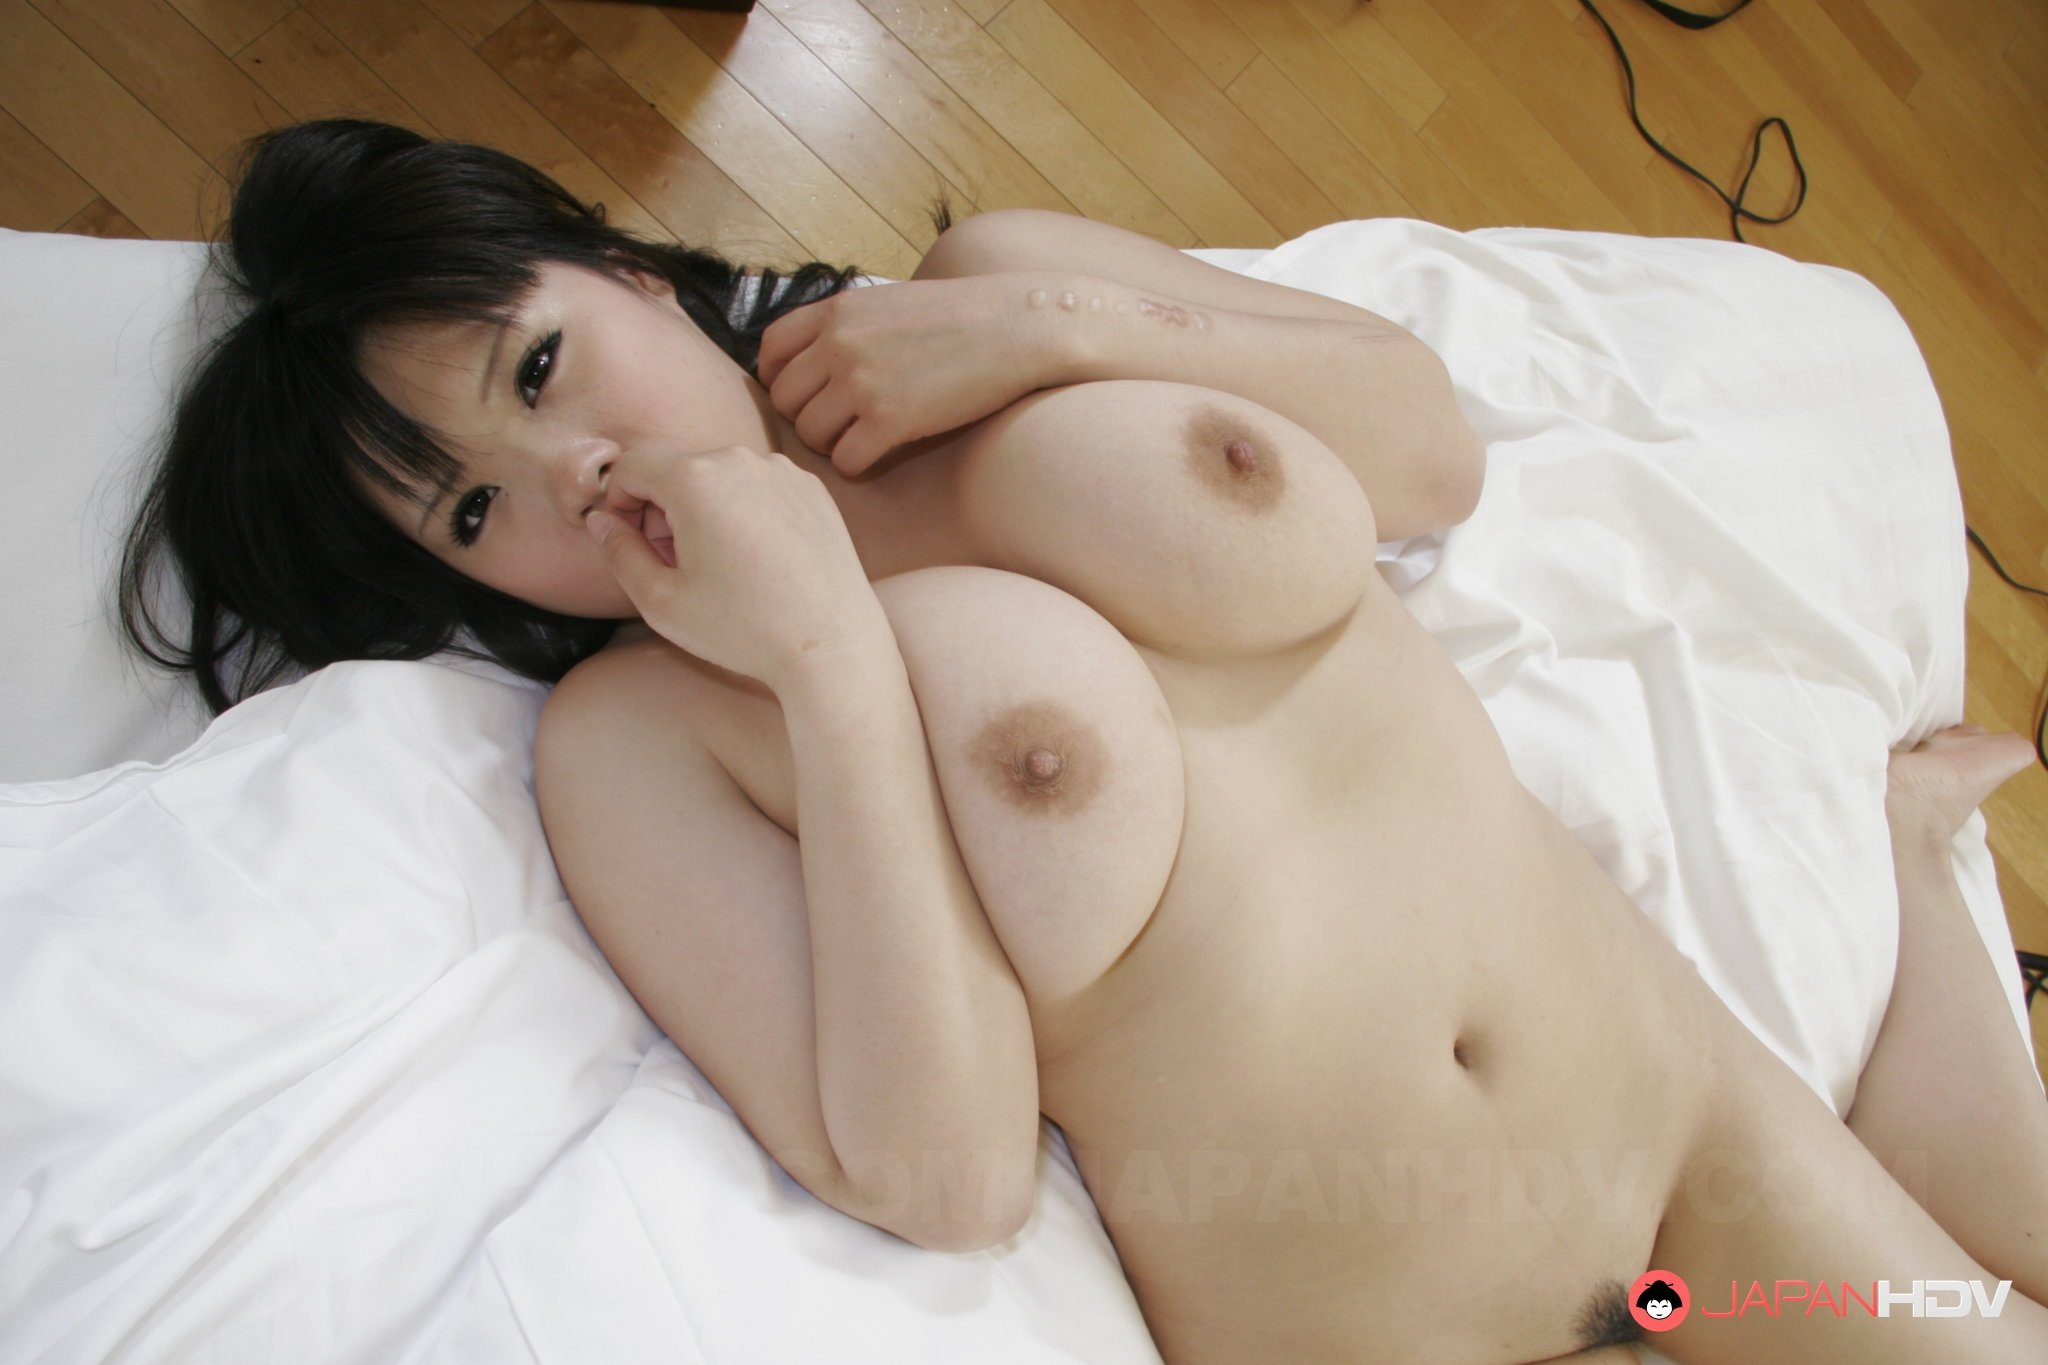 Japanese wife shared 010 Lesbian amatures video